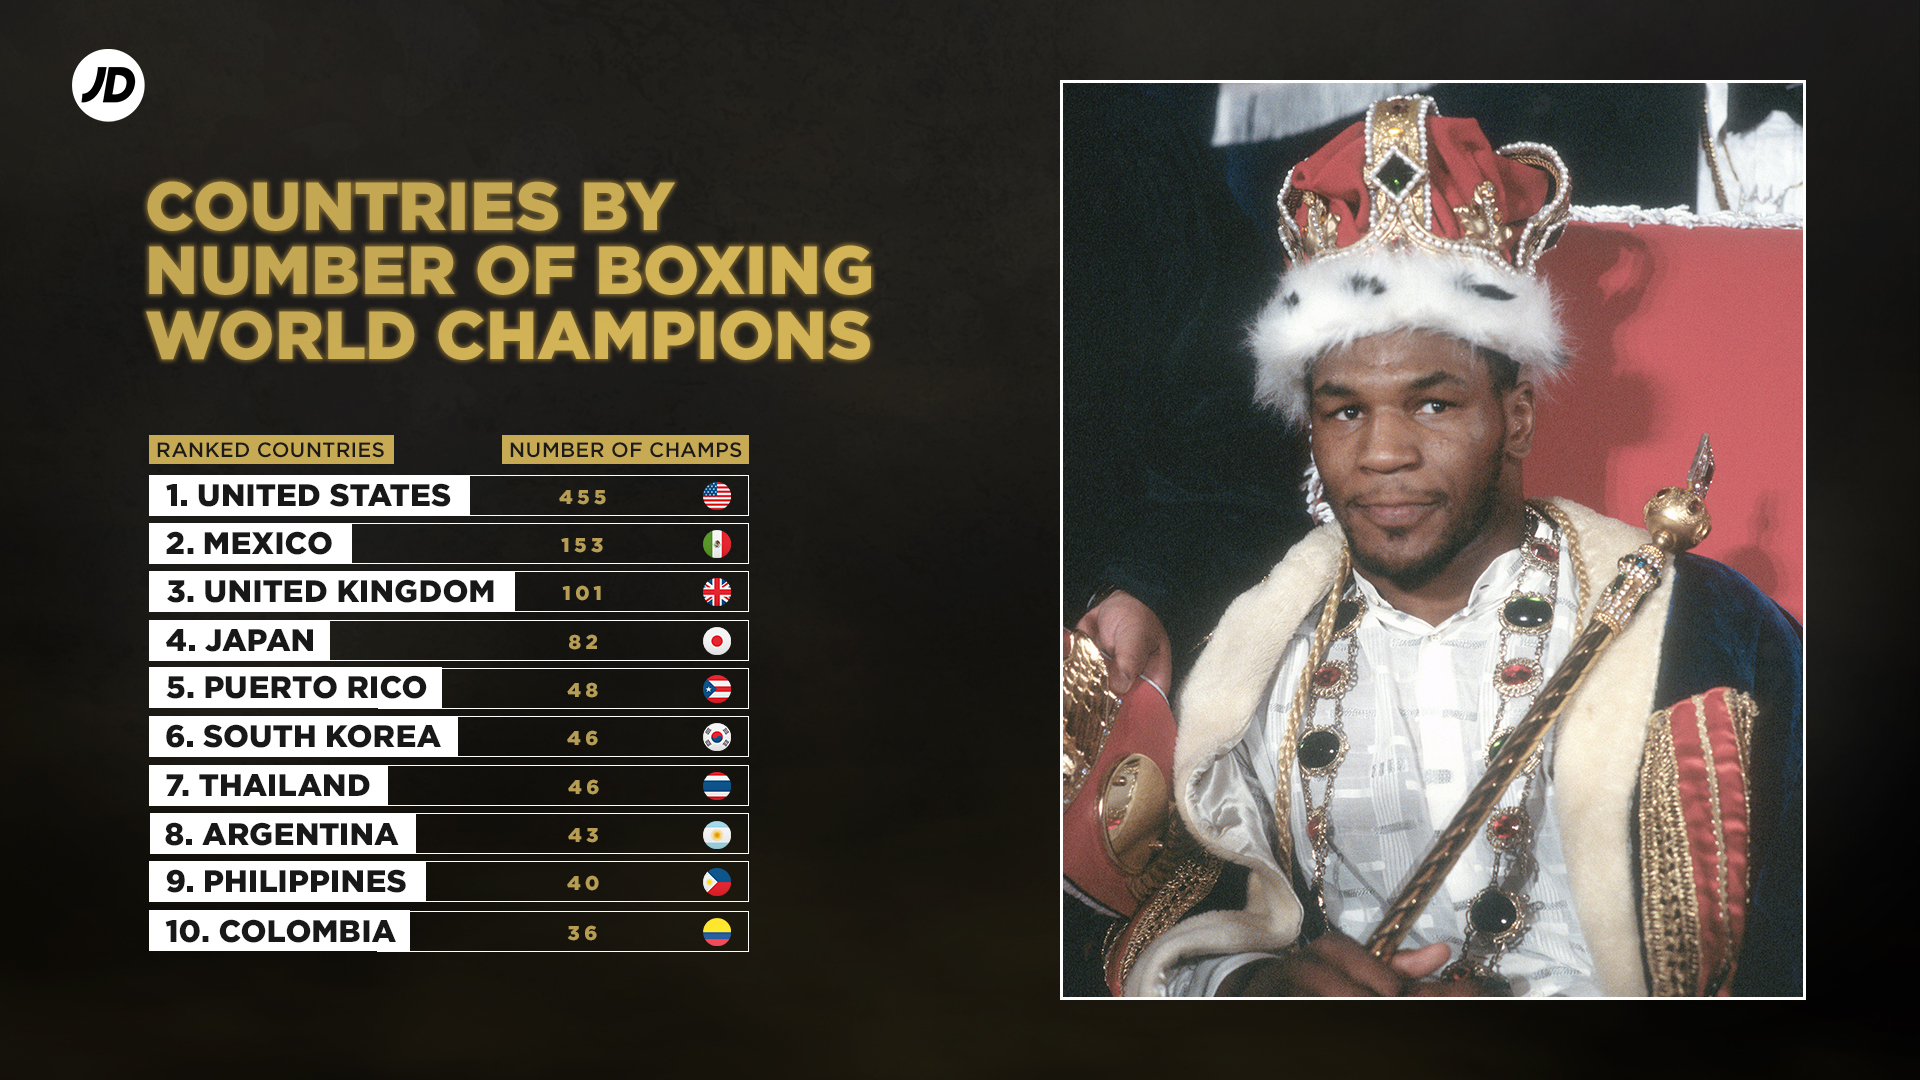 Top countries with most boxing world champions